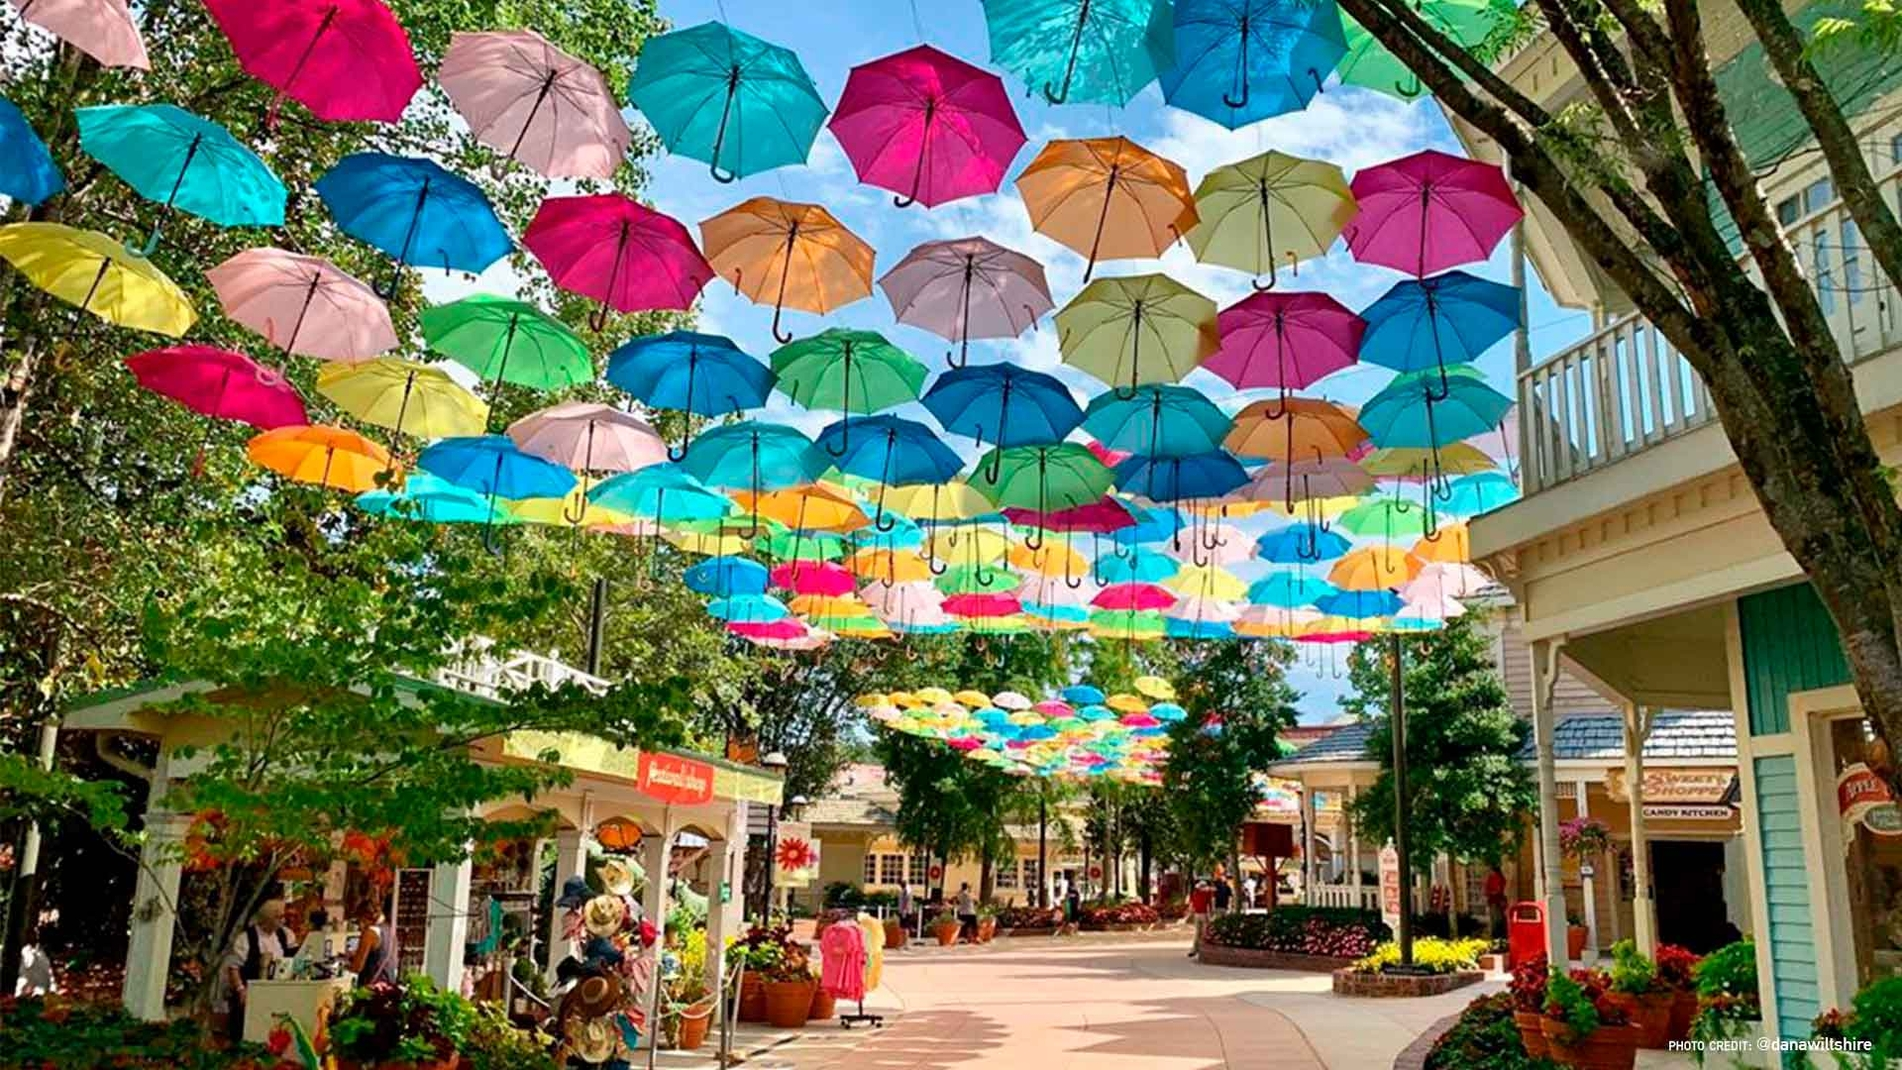 Umbrella Sky Project - Pigeon Forge, TN'20